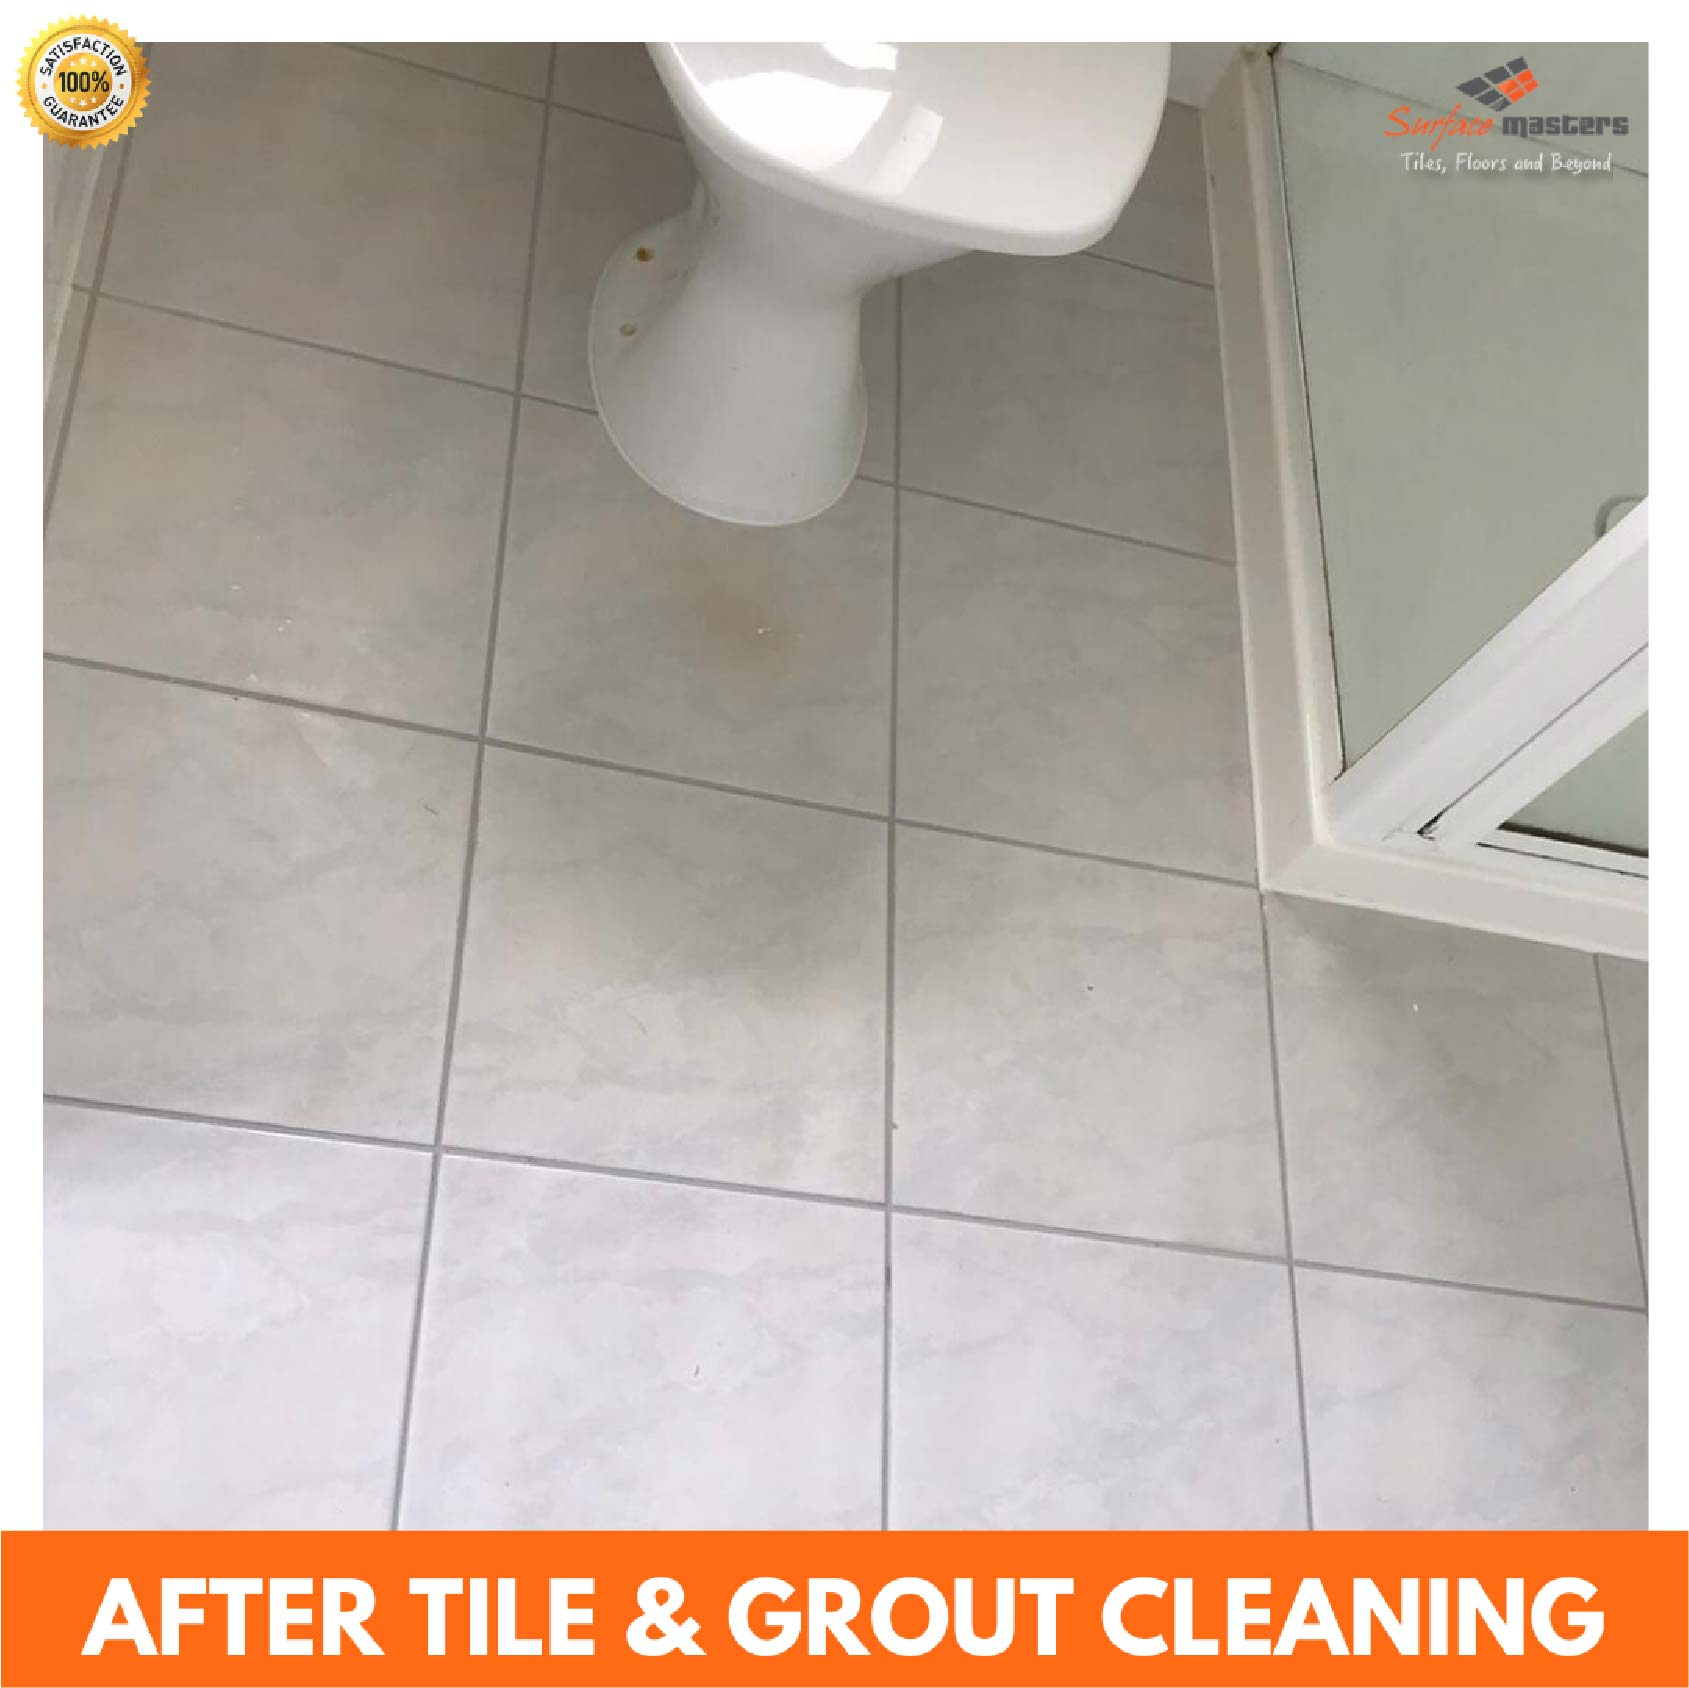 after pic of grout cleaner, tile cleaner and restoration of tiled floor with surface masters logo